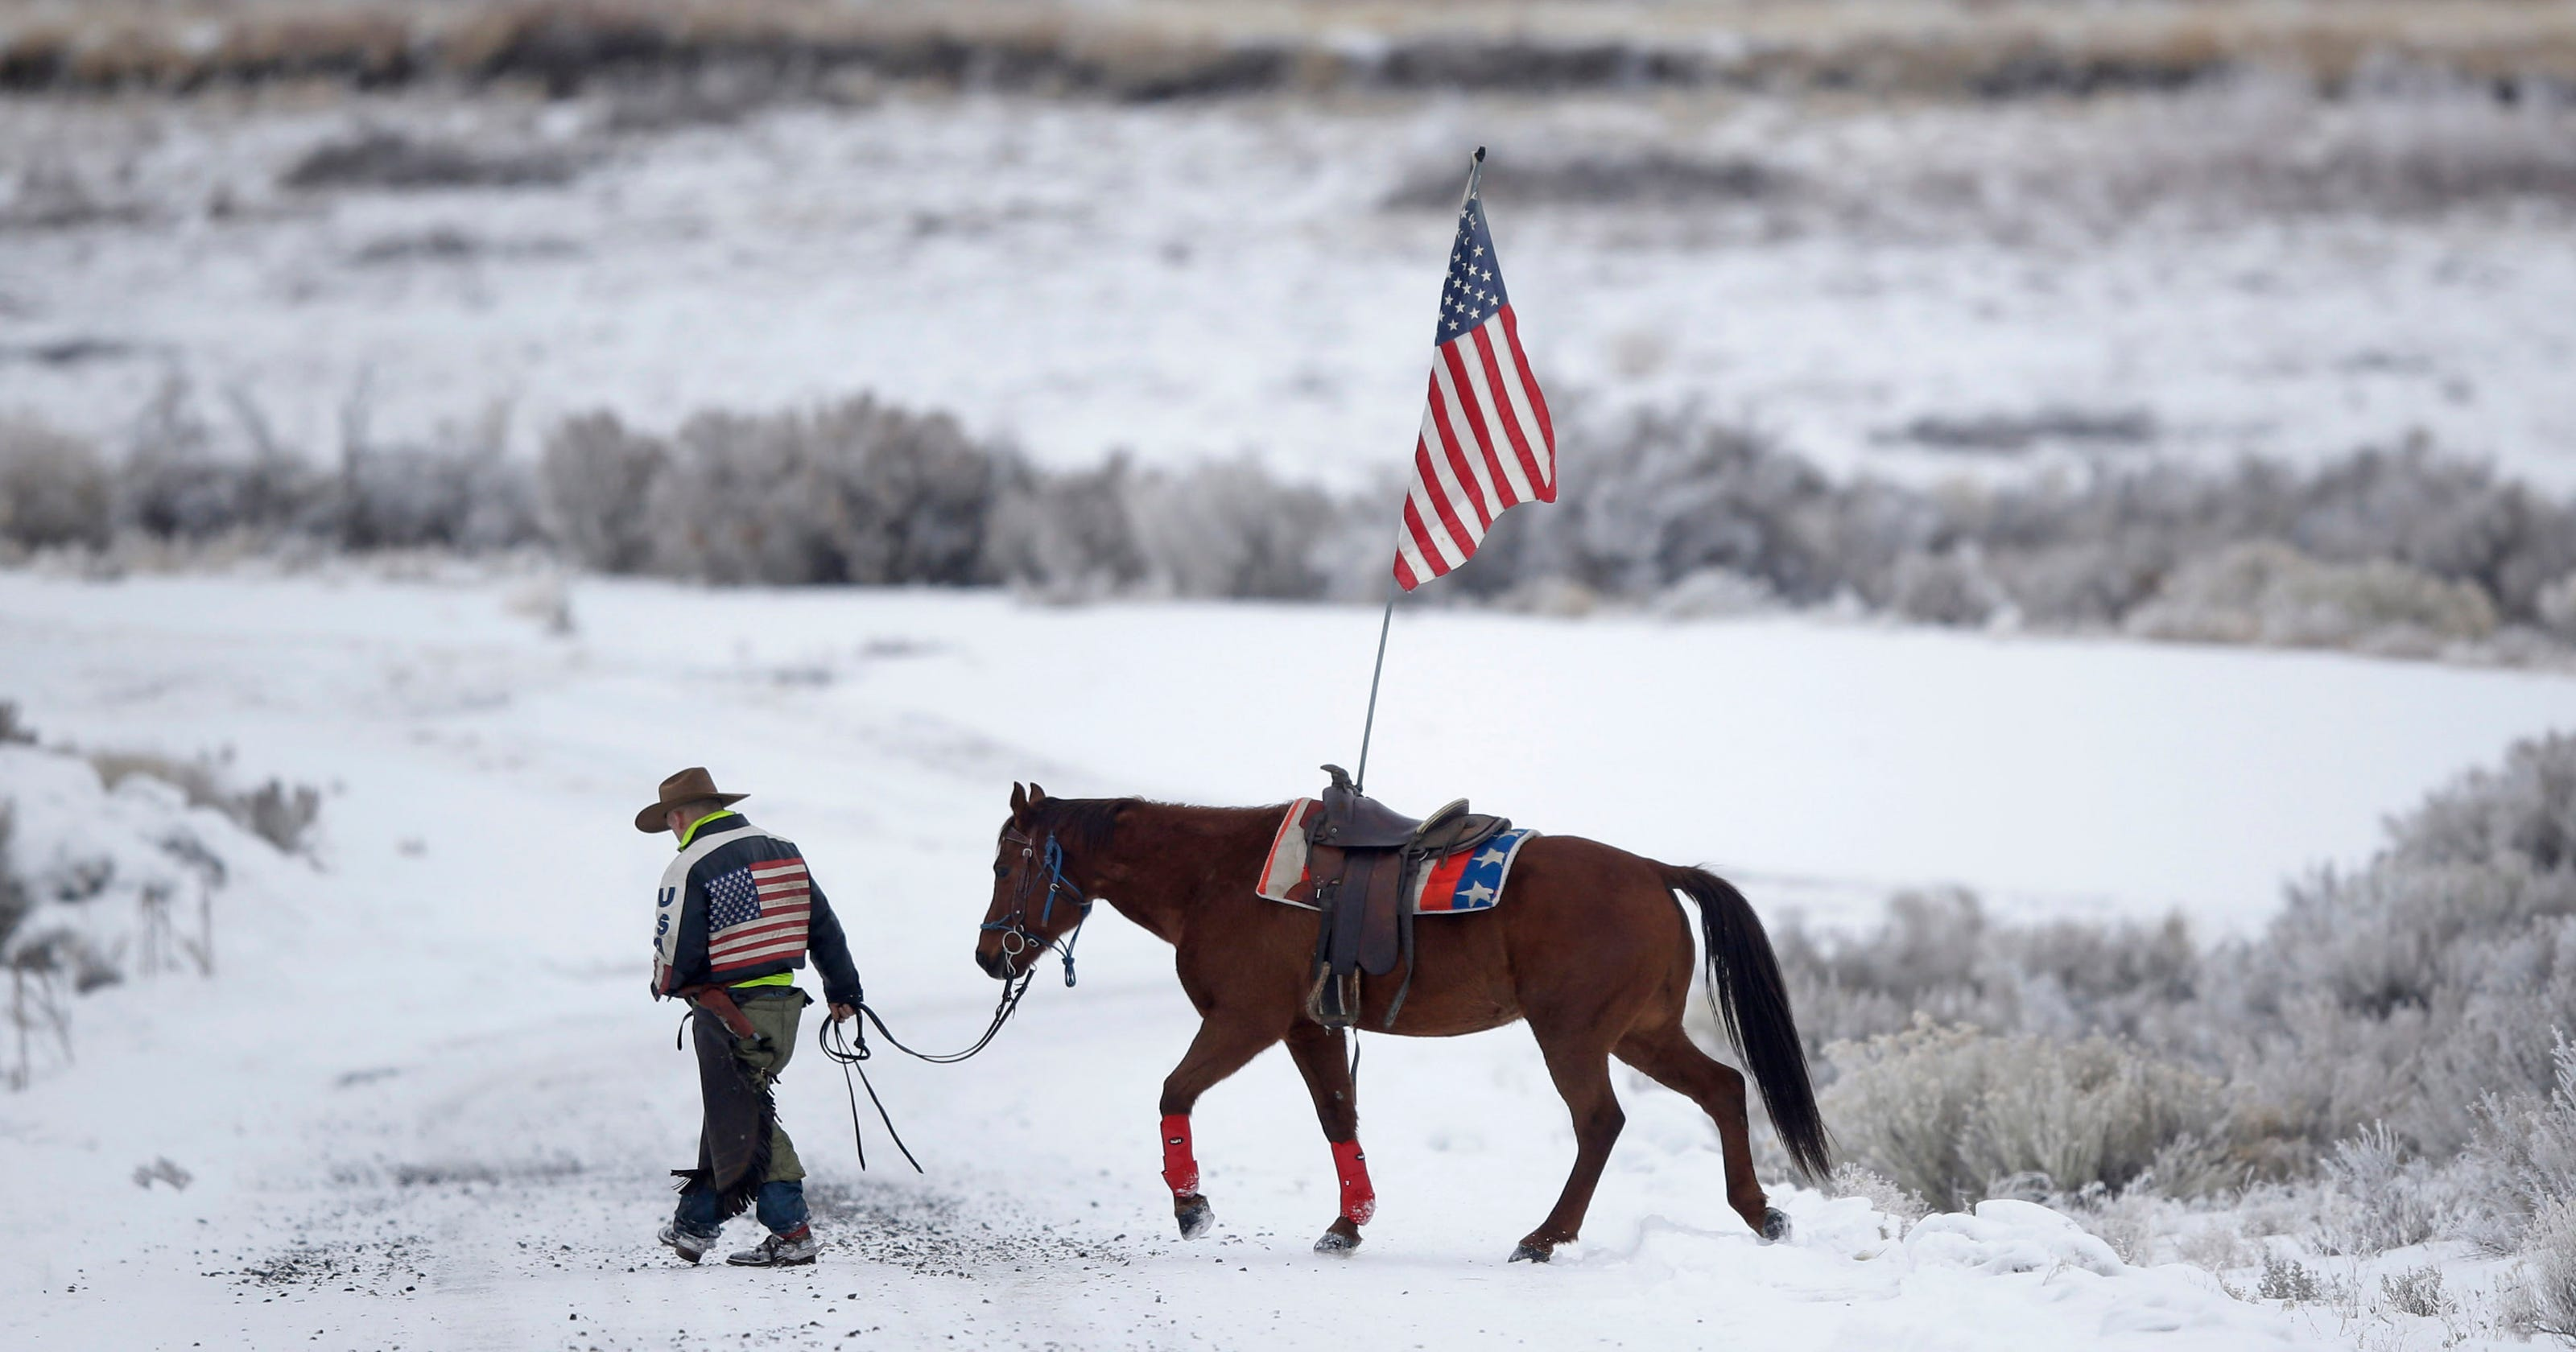 Key figures in Oregon standoff have Arizona ties